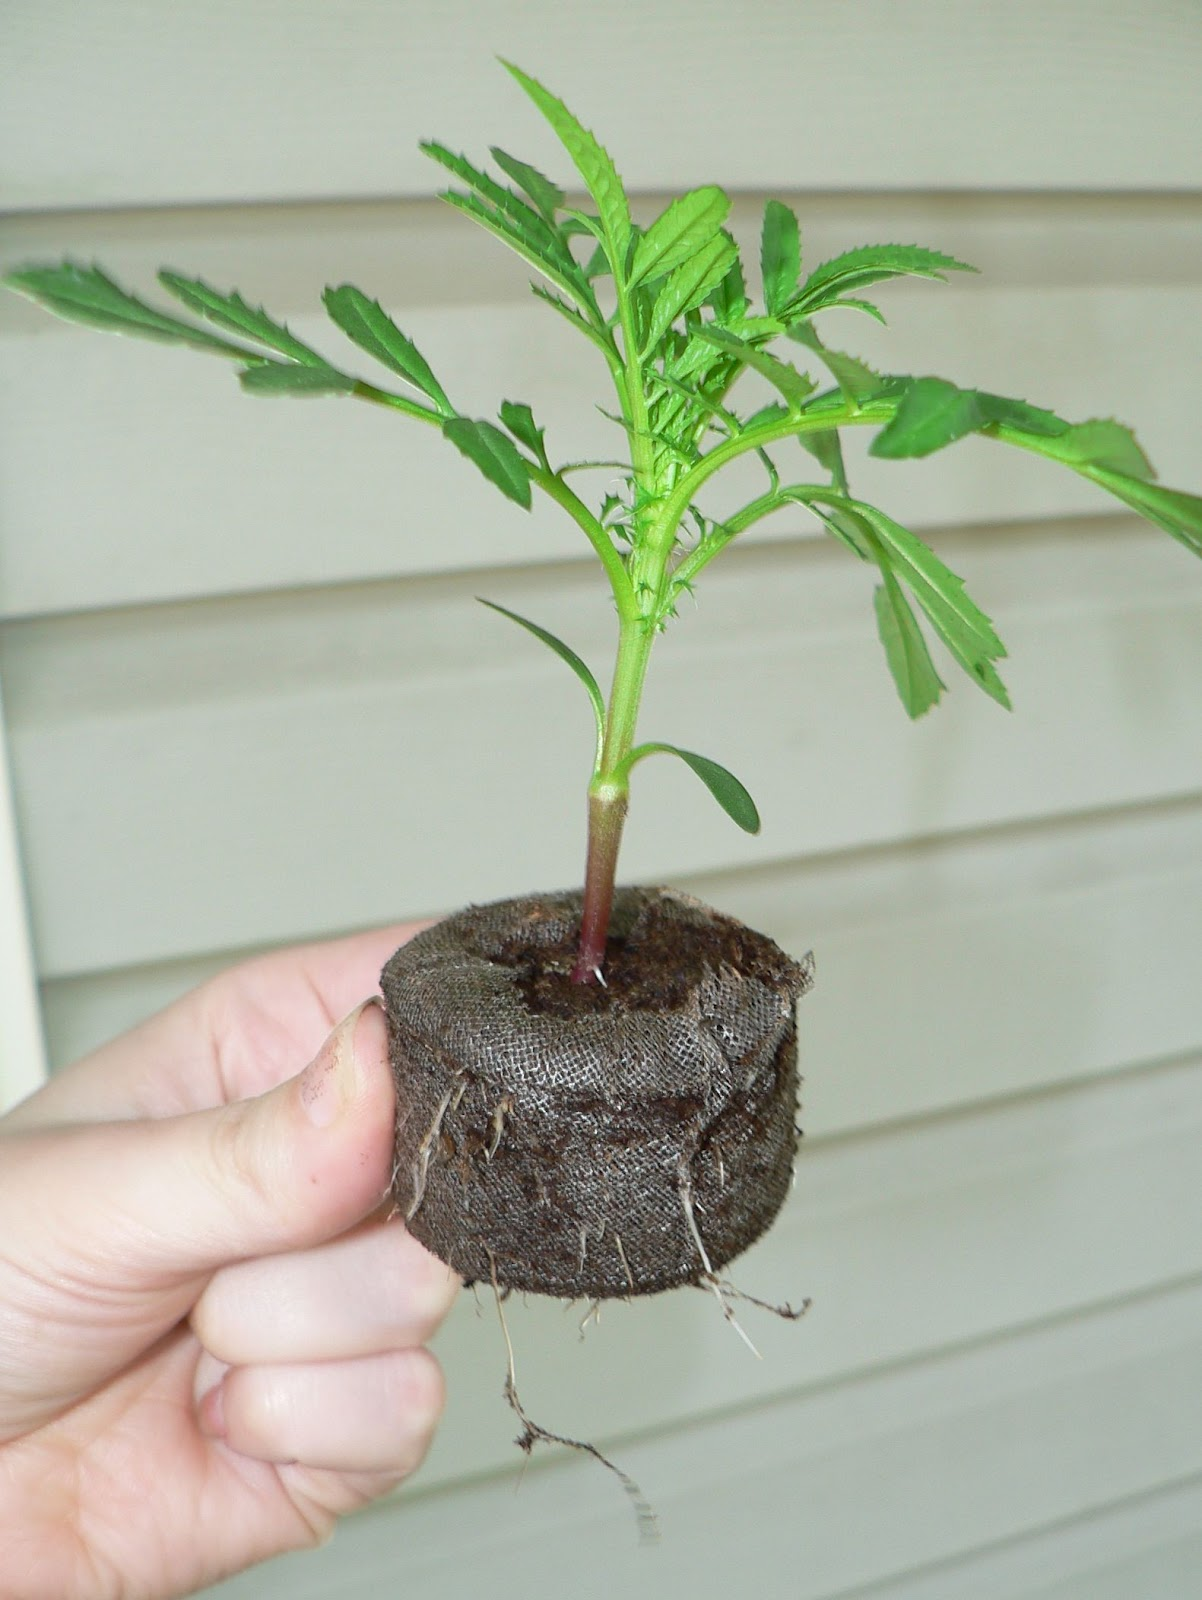 Visit My Garden: Seed Starting Marigold Plant With Roots